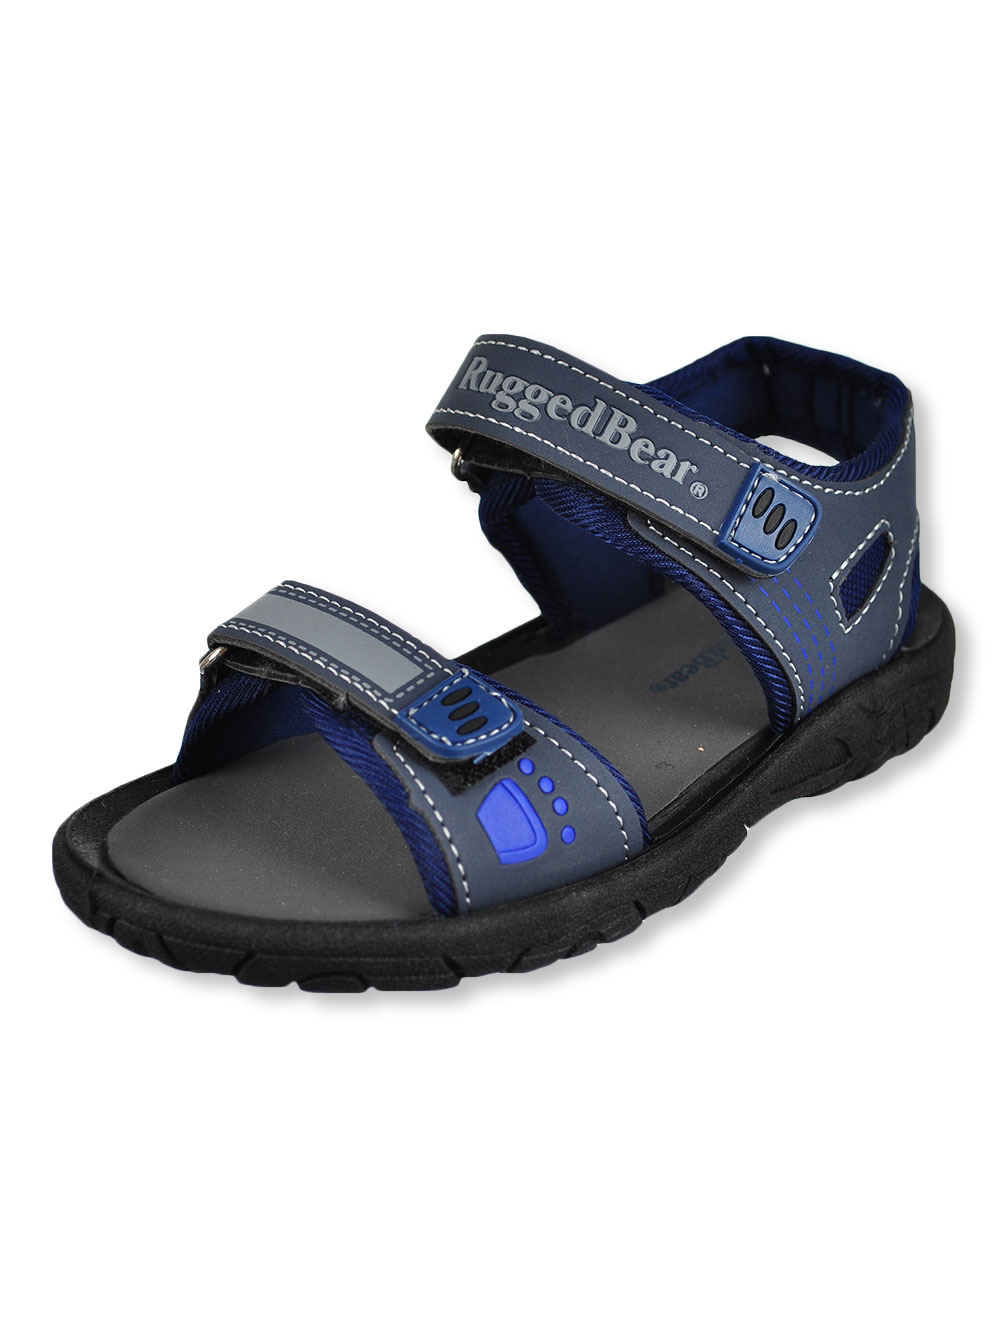 Boys Double Strap Sport Sandals By